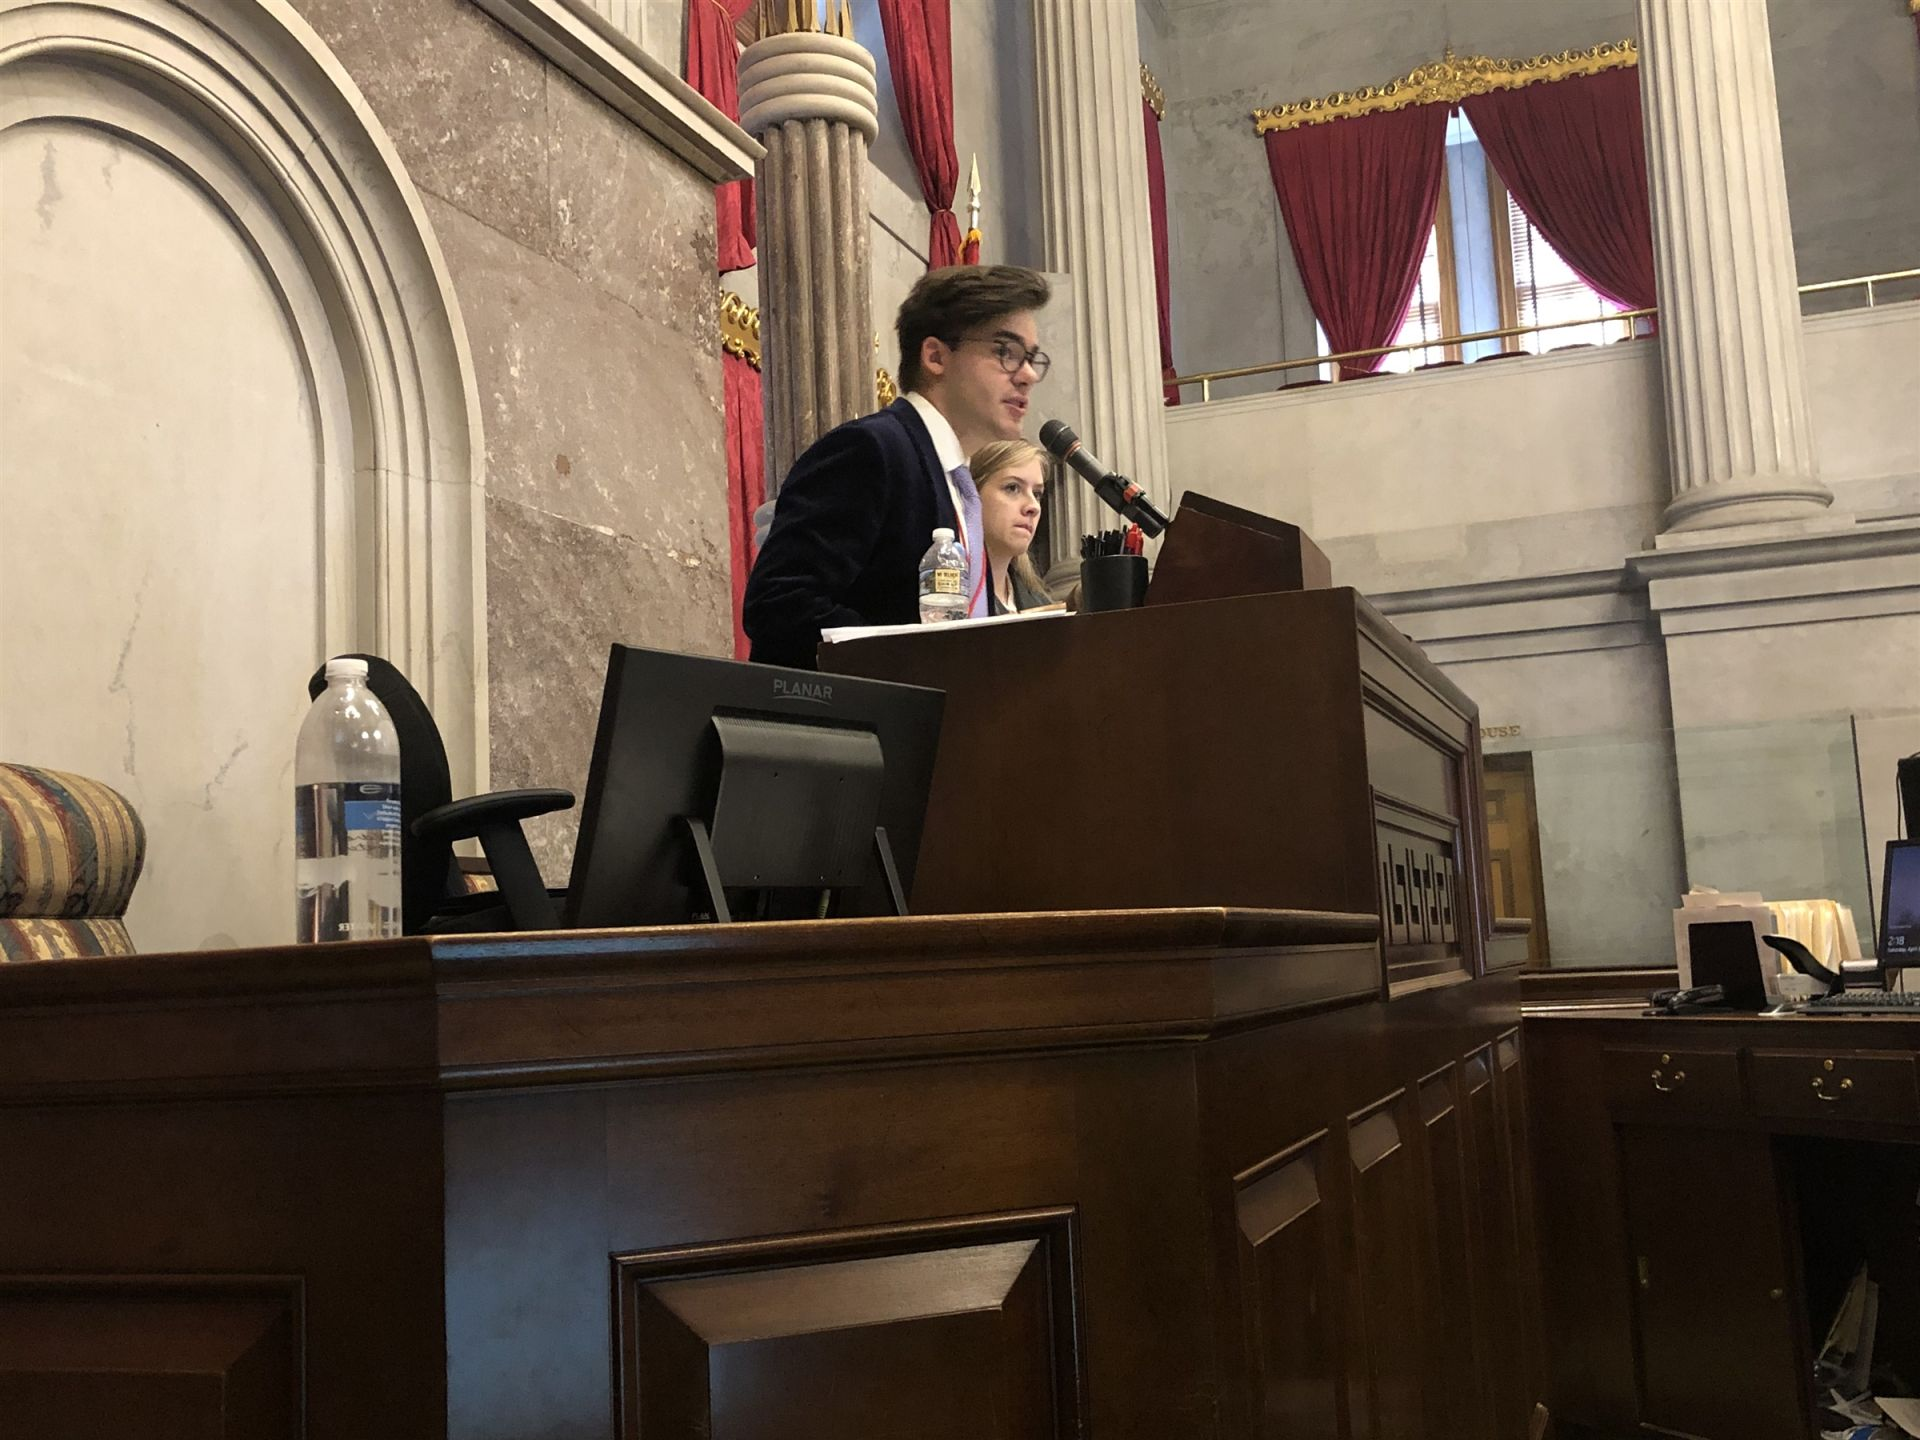 Sam presides as Speaker Pro-Tempore of the Red House